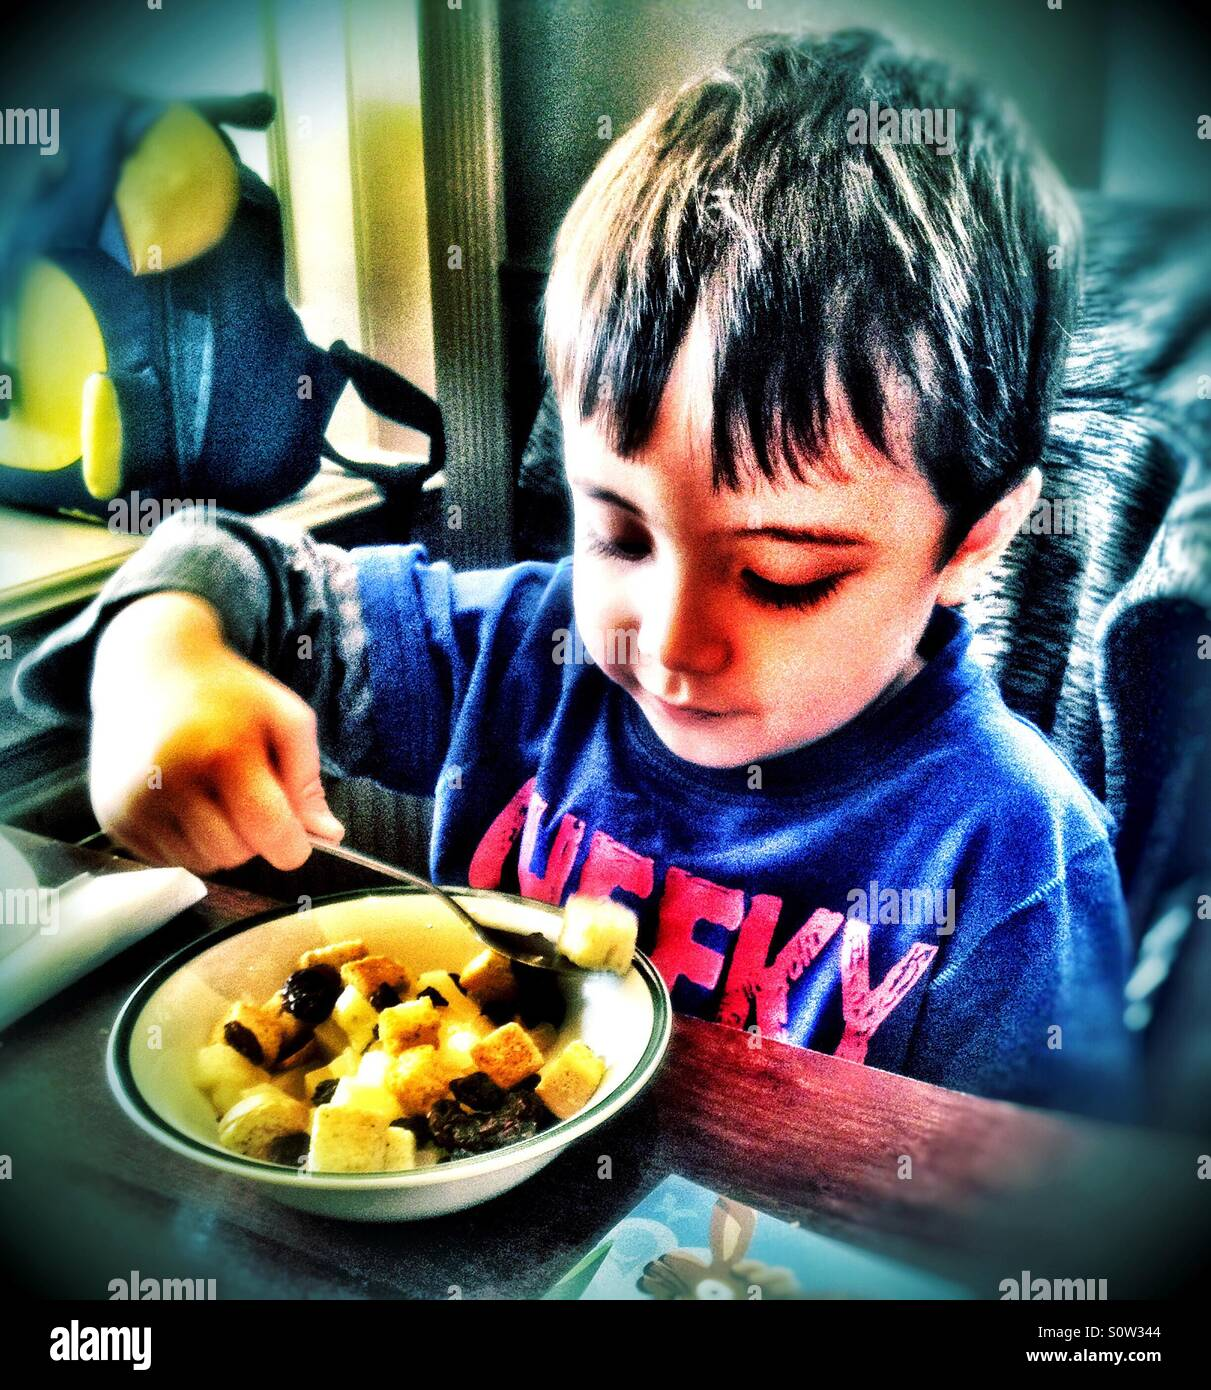 A young boy eating a mixed salad of pineapple, sweetcorn, raisins and croutons. - Stock Image